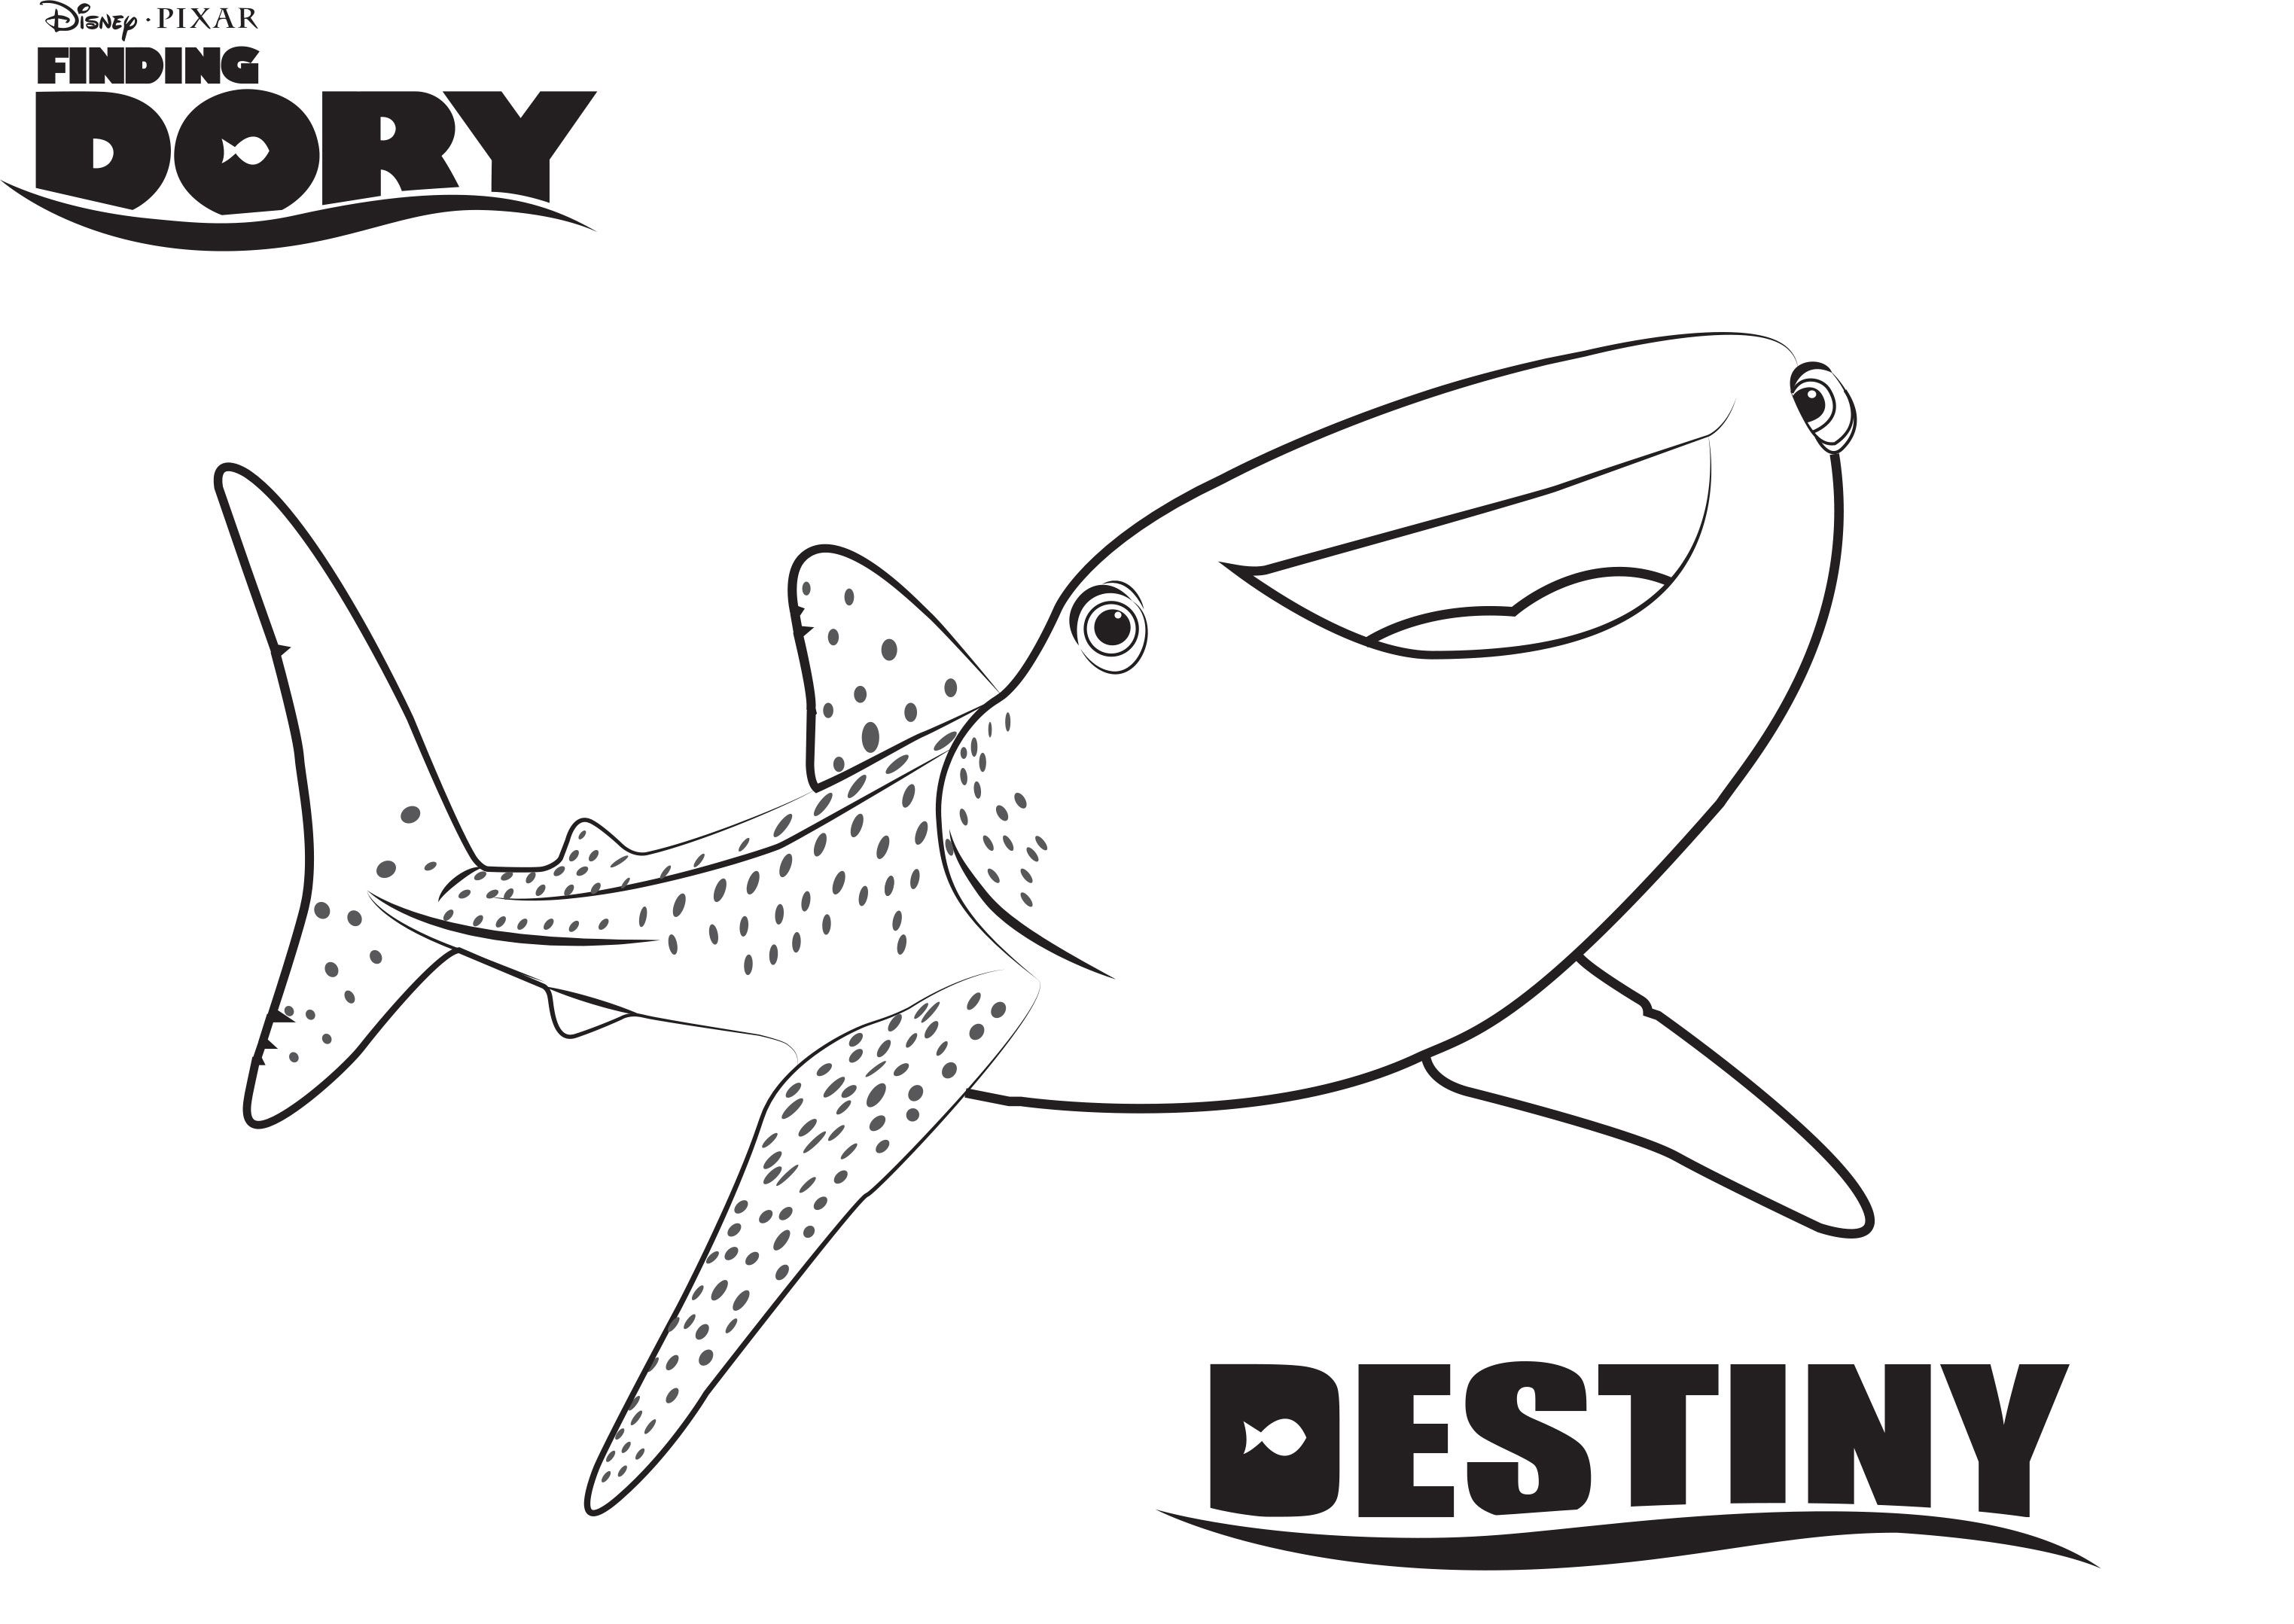 Disney 39 s Finding Dory Coloring Pages Sheet Free Disney